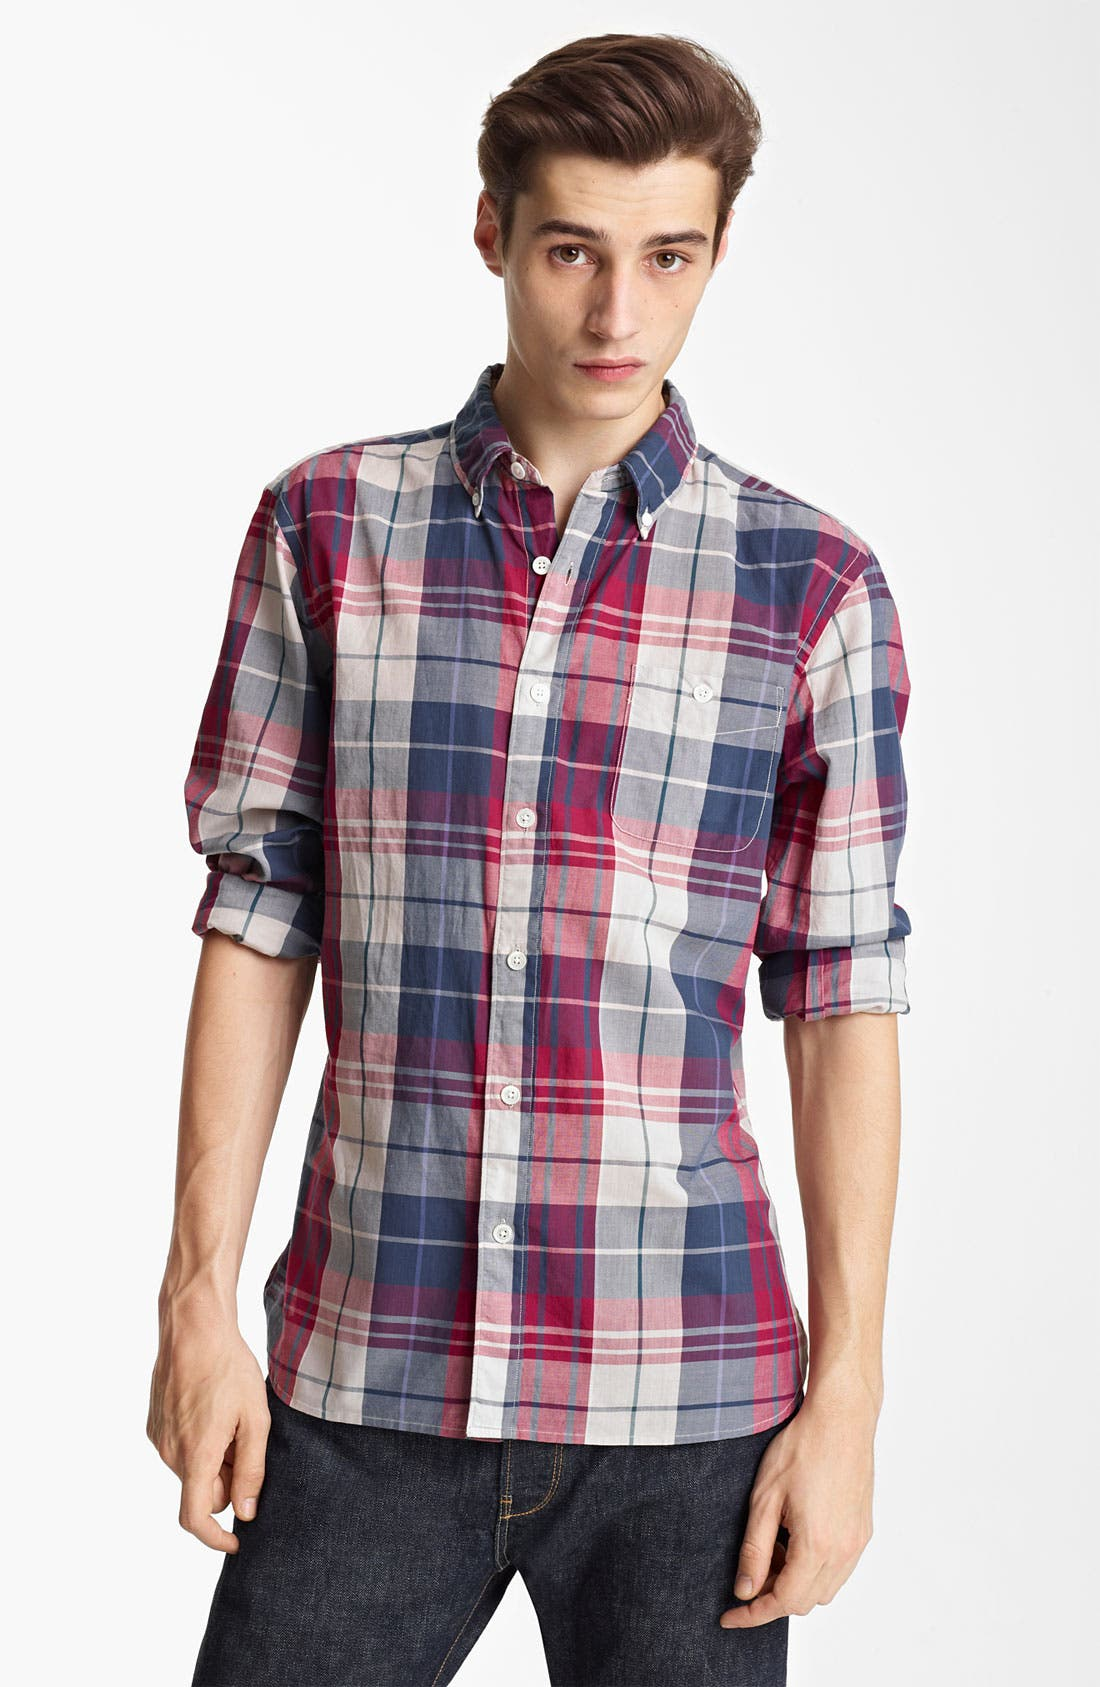 Alternate Image 1 Selected - Todd Snyder Plaid Woven Shirt